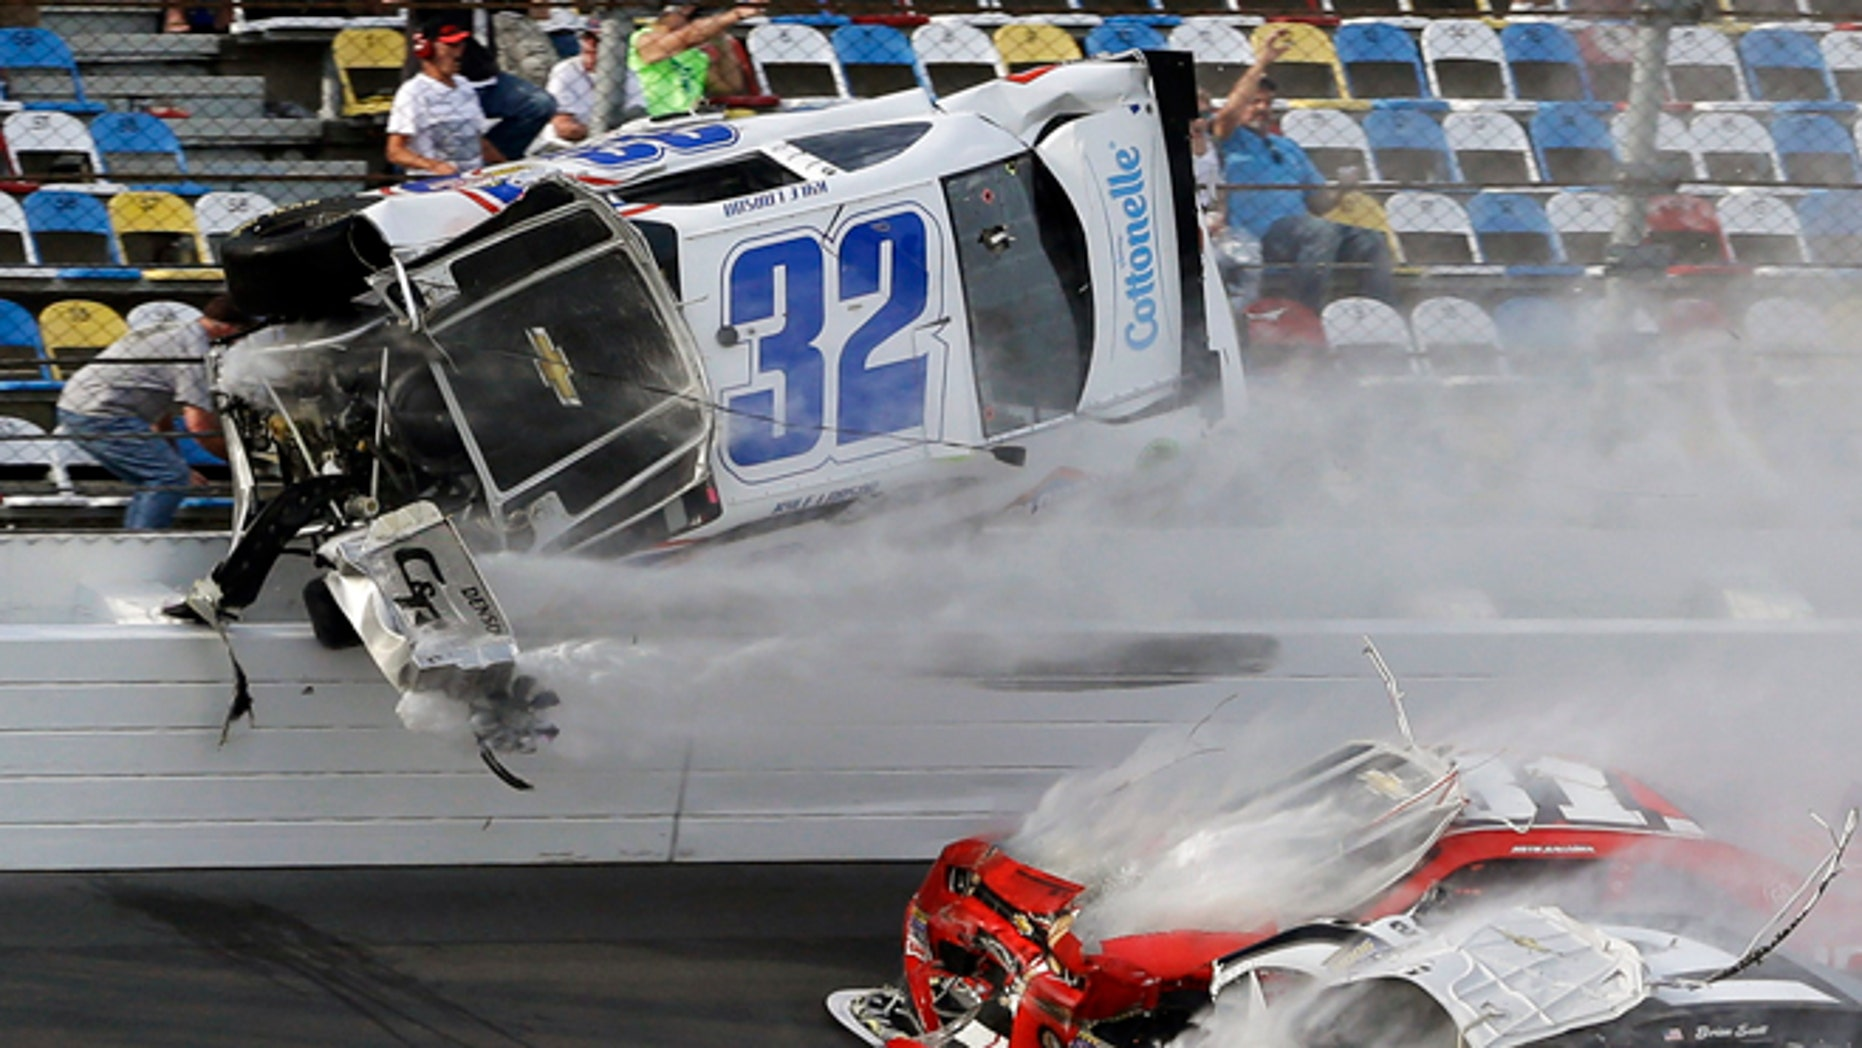 Feb. 23, 2013: Kyle Larson (32) goes airborne and into the catch fence during a multi-car crash involving Justin Allgaier (31), Brian Scott (2) and others during the final lap of the NASCAR Nationwide Series auto race at Daytona International Speedway in Daytona Beach, Fla.